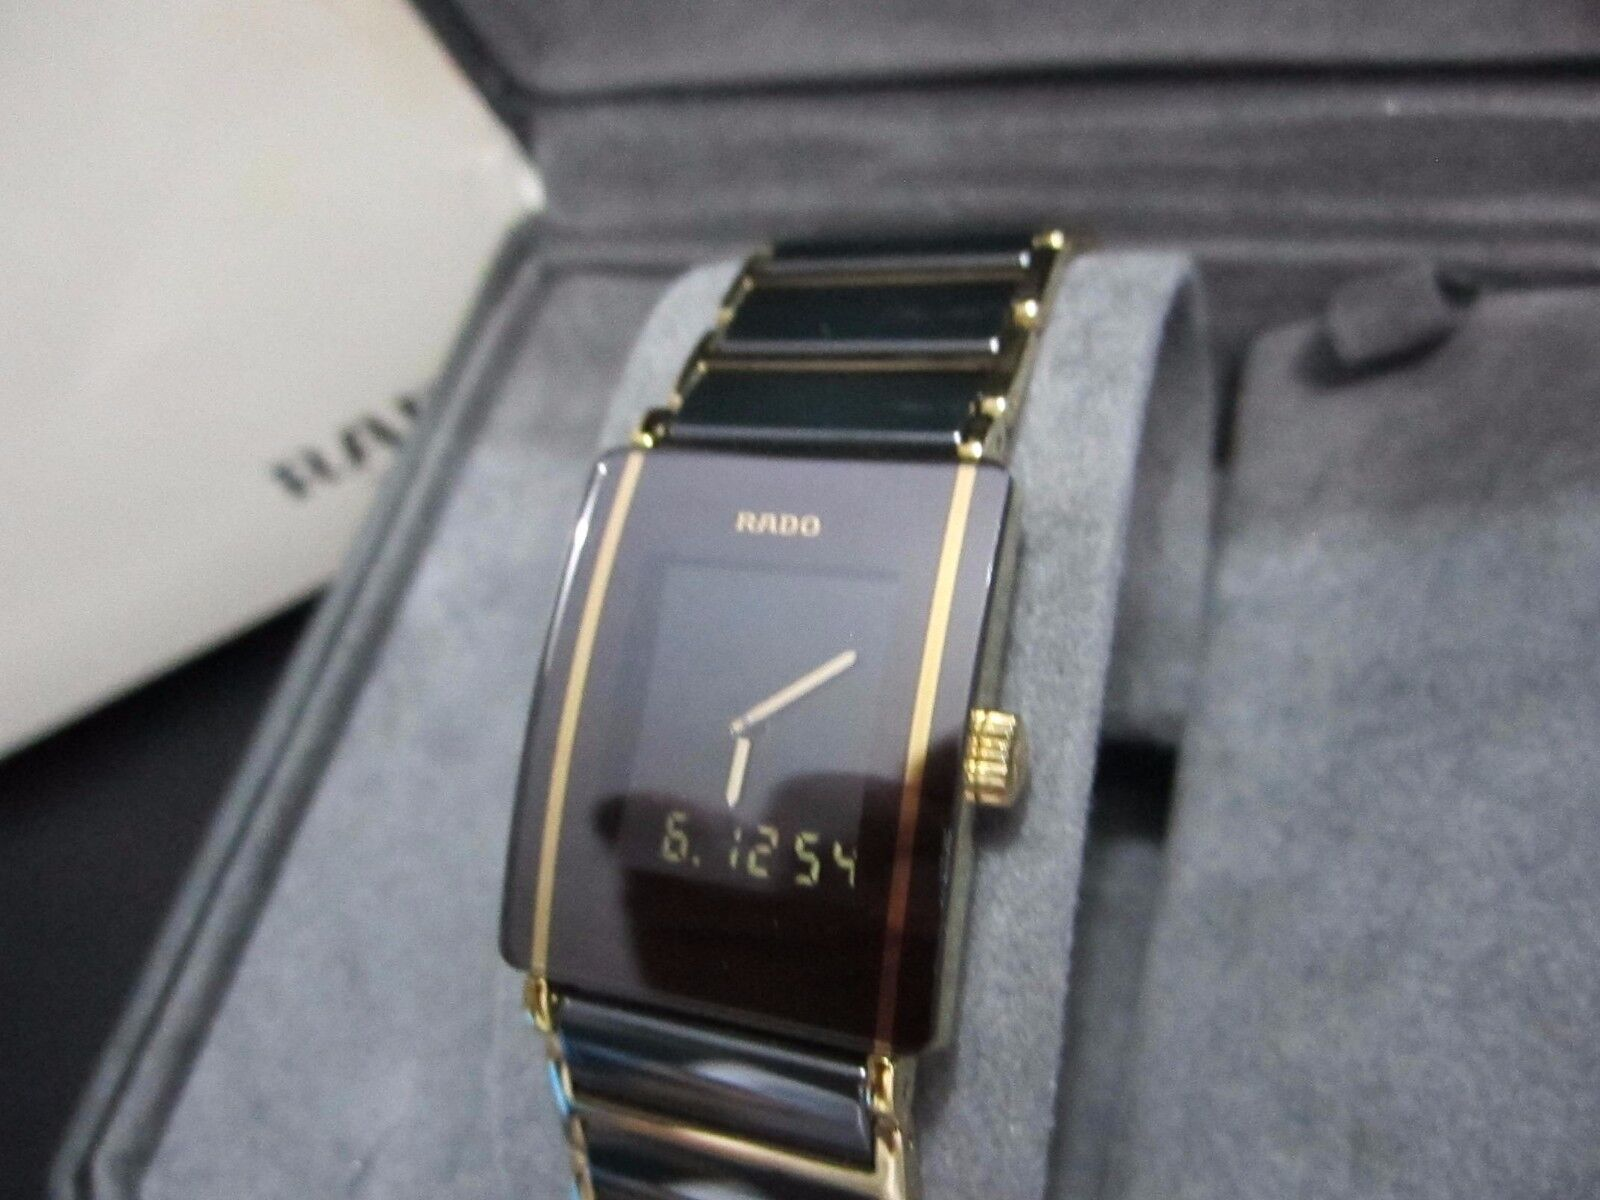 $399.99 - Rado DiaStar Woman High Tech Ceramic Scratchproof Analog & Digital 18K PVD